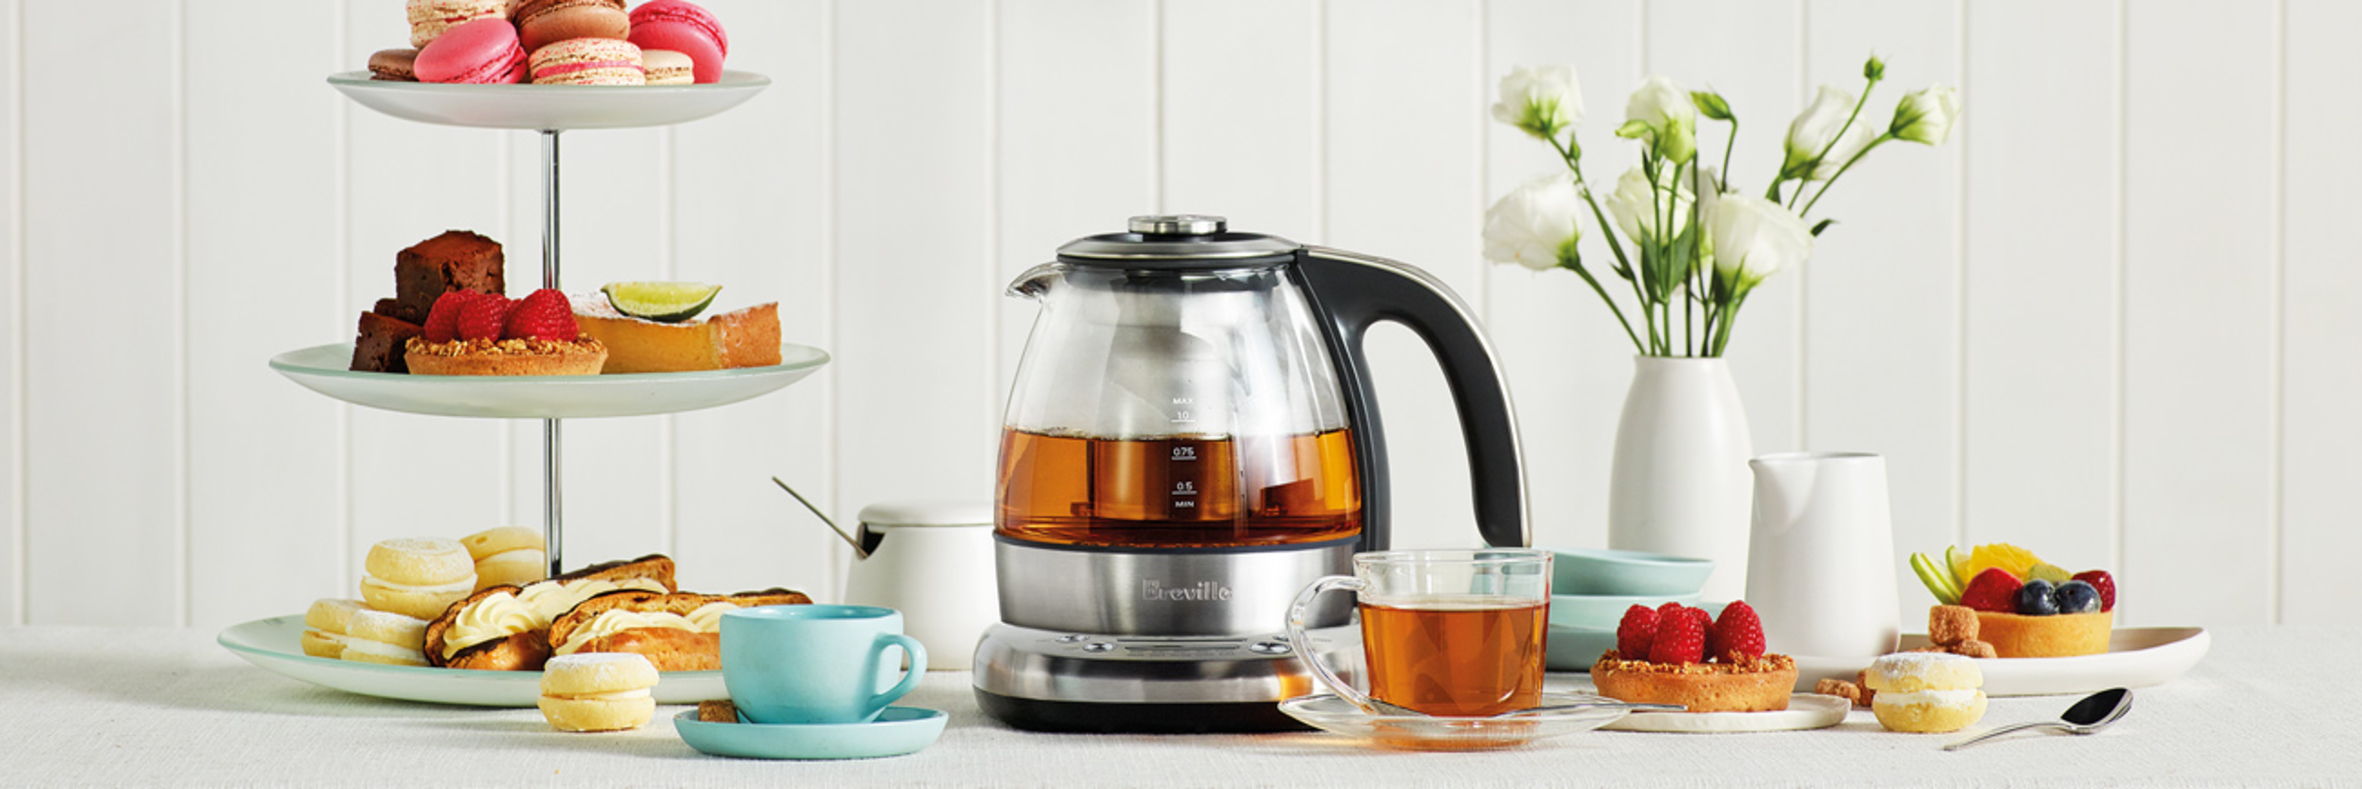 the Breville Smart Tea Infuser Compact in Brushed Stainless Steel